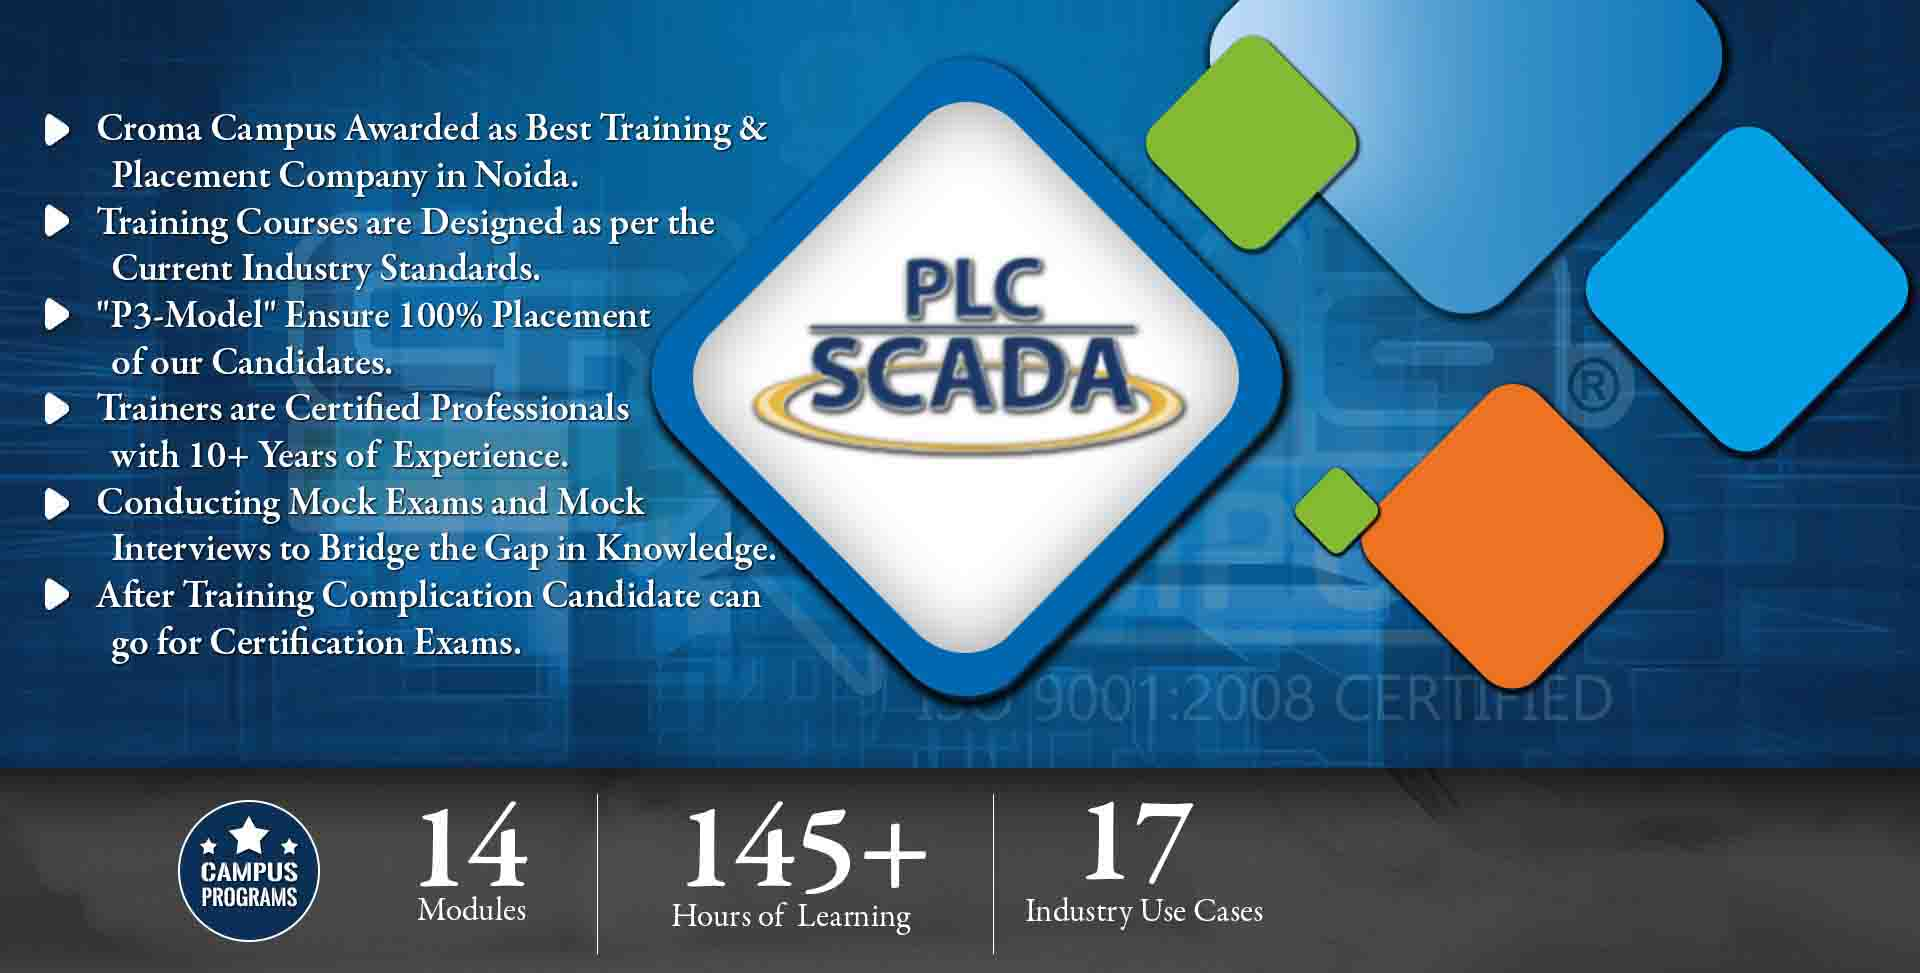 PLC Scada Training in Noida- Croma Campus